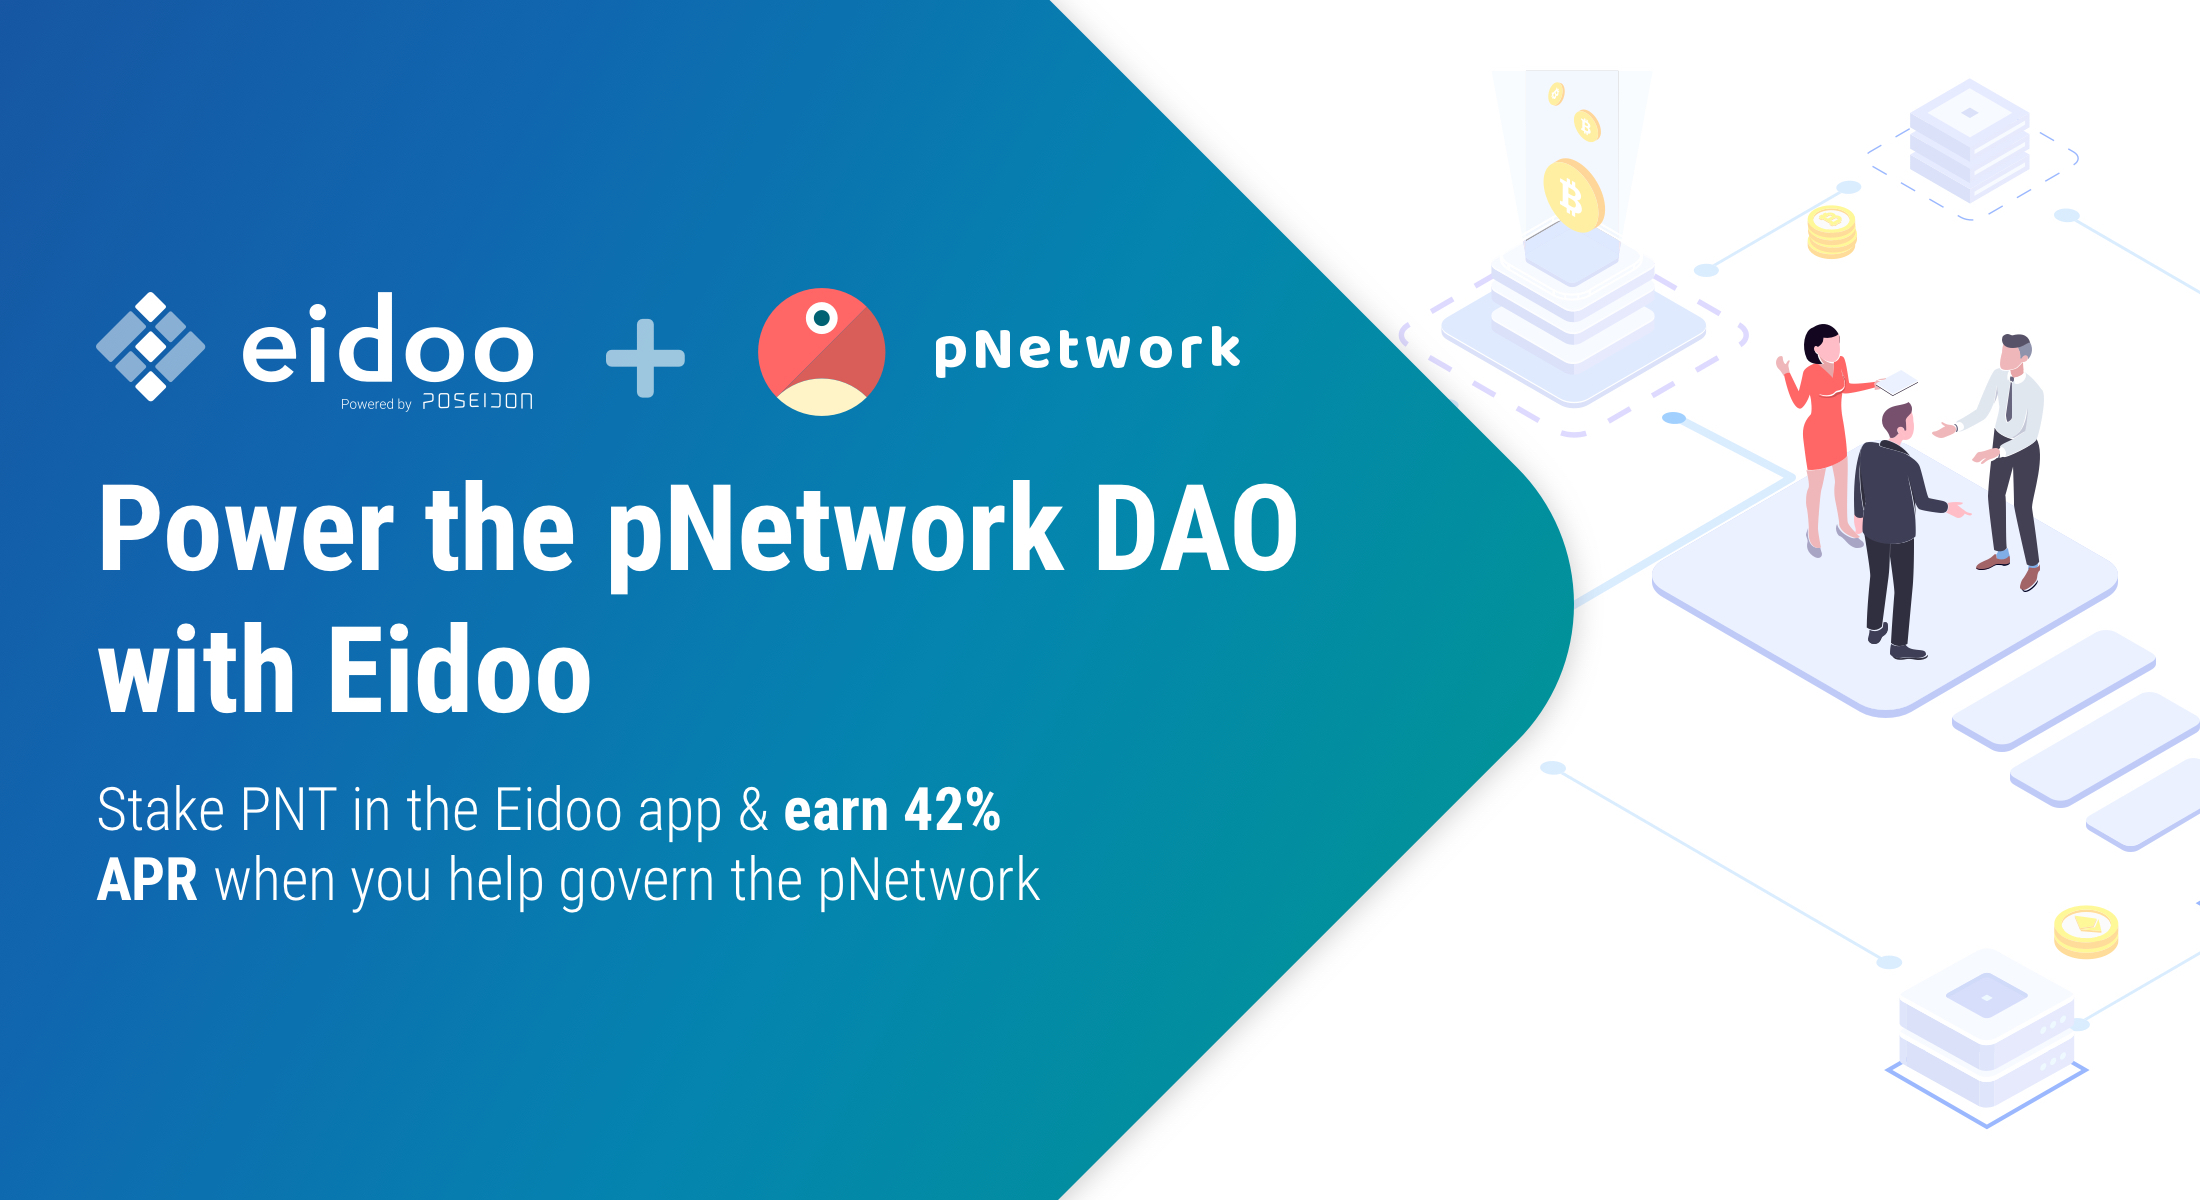 Power the pNetwork DAO and earn 42% interest APR on your PNT stake